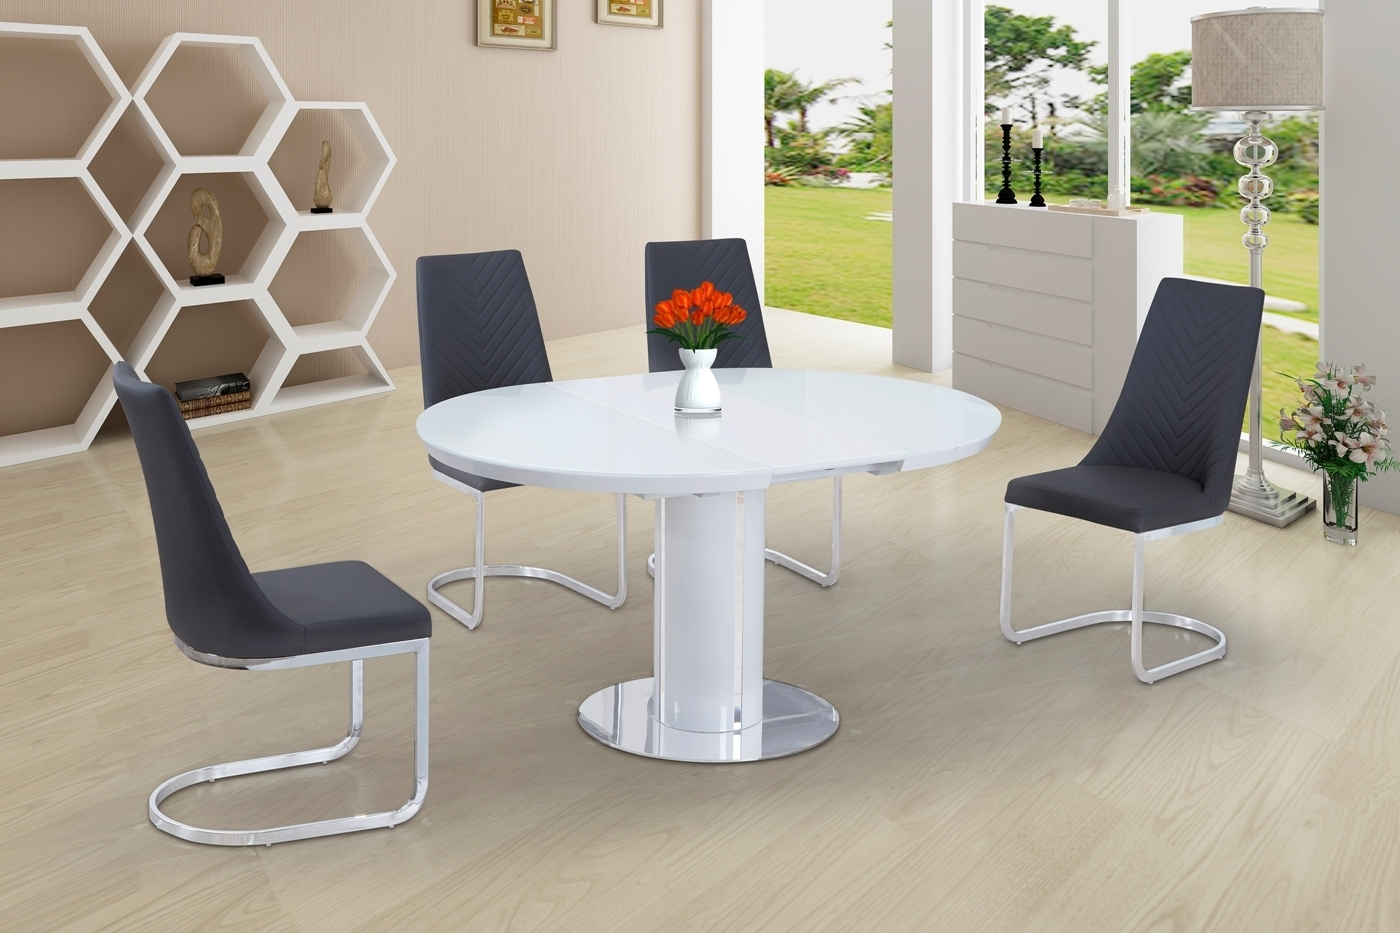 Round White Glass High Gloss Dining Table And 4 Grey Chairs